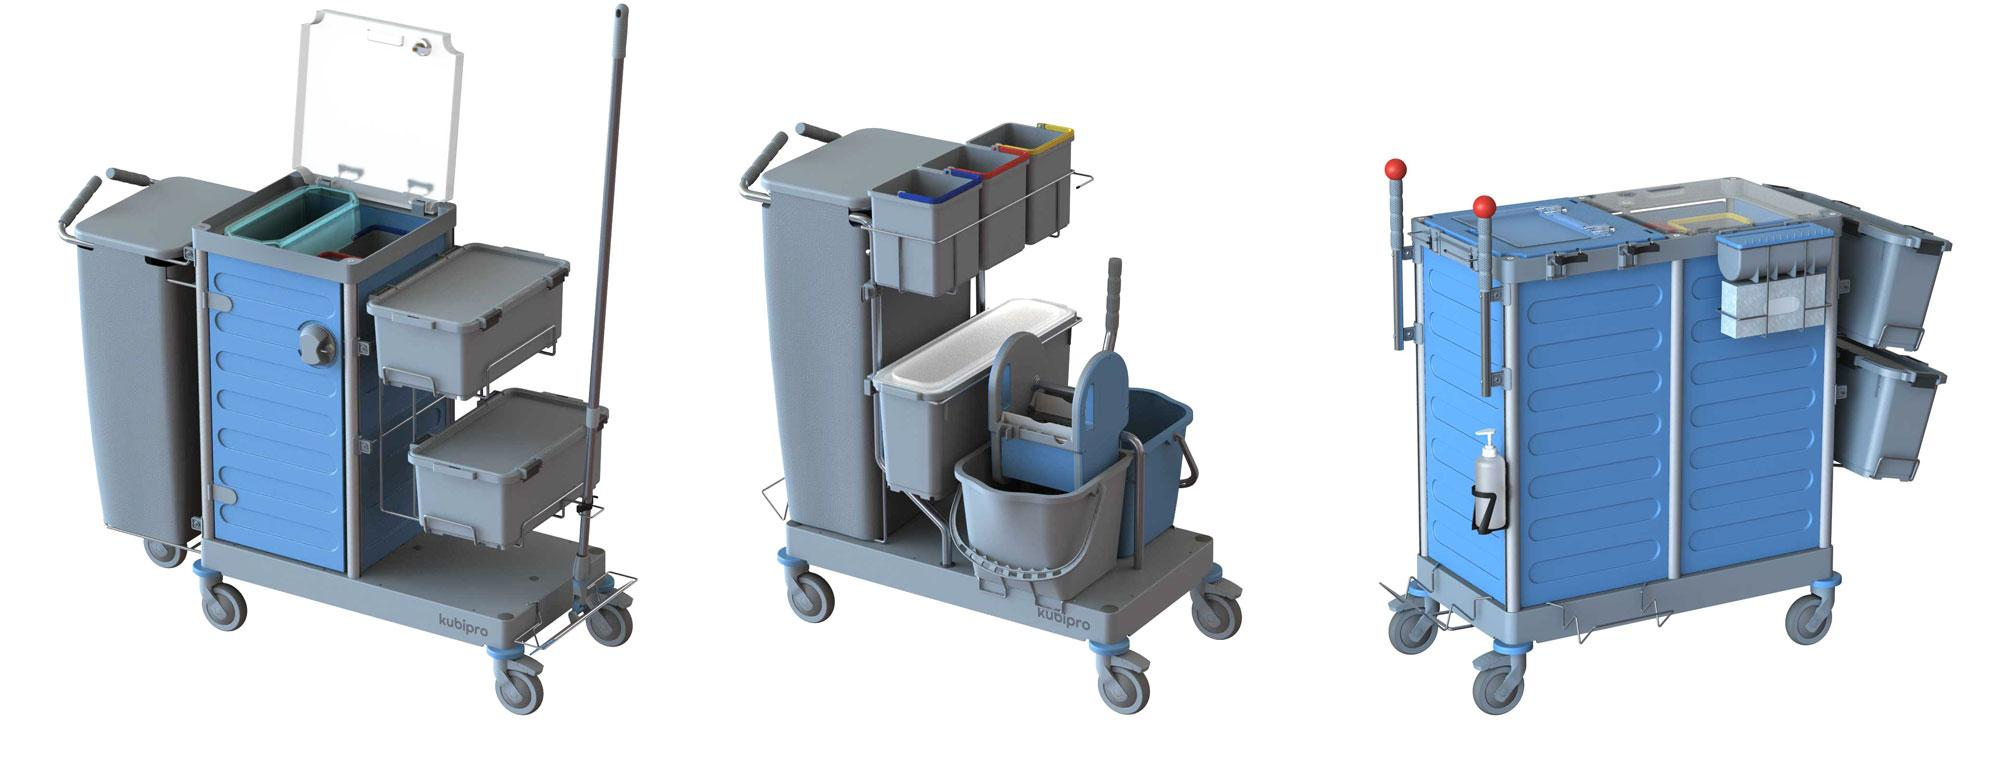 Kubi trolleys can be set up and customized with their specific accessories.